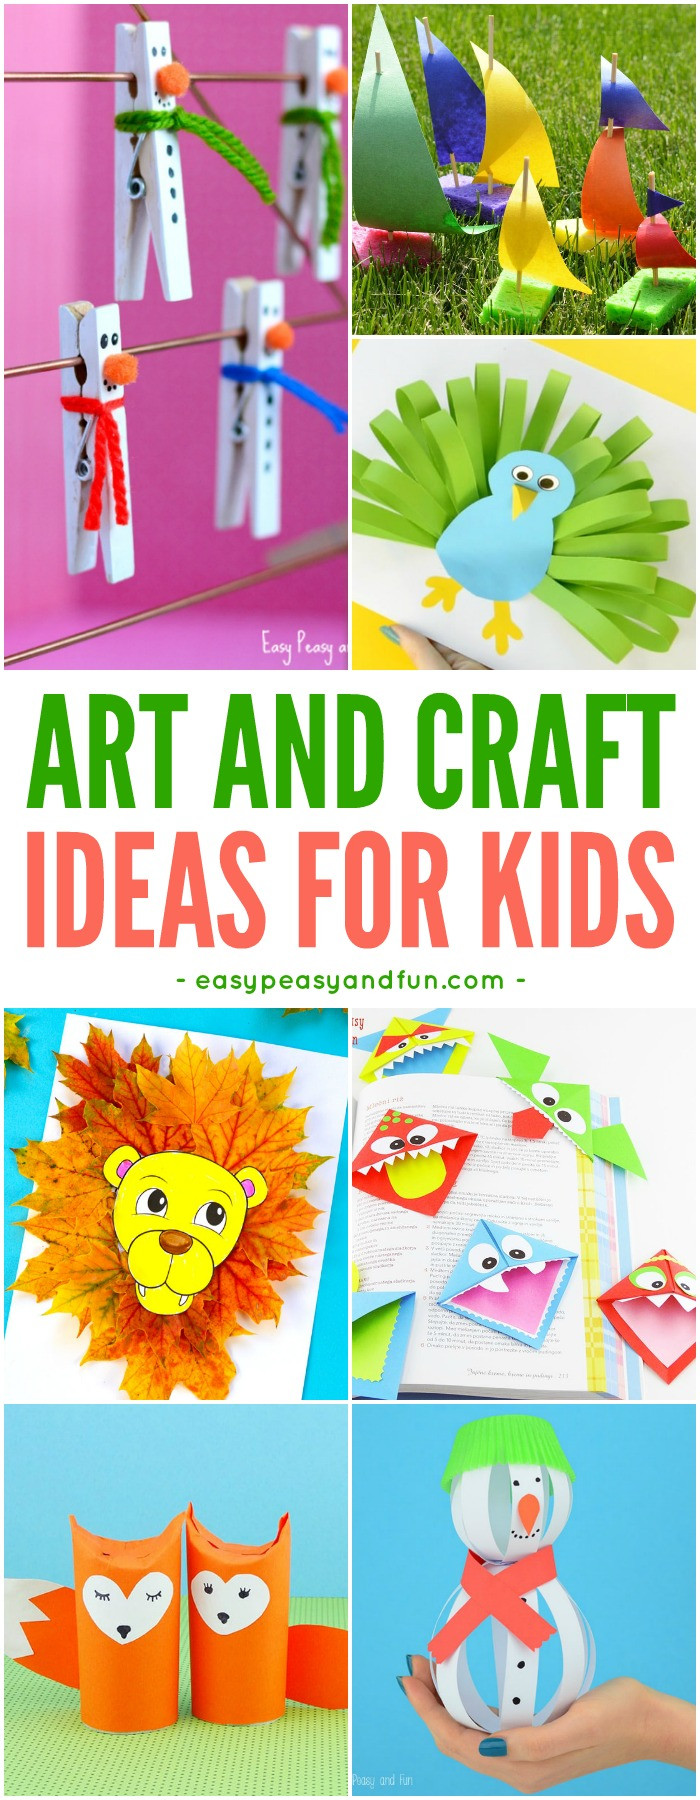 Best ideas about Arts And Crafts Activities For Kids . Save or Pin Crafts For Kids Tons of Art and Craft Ideas for Kids to Now.